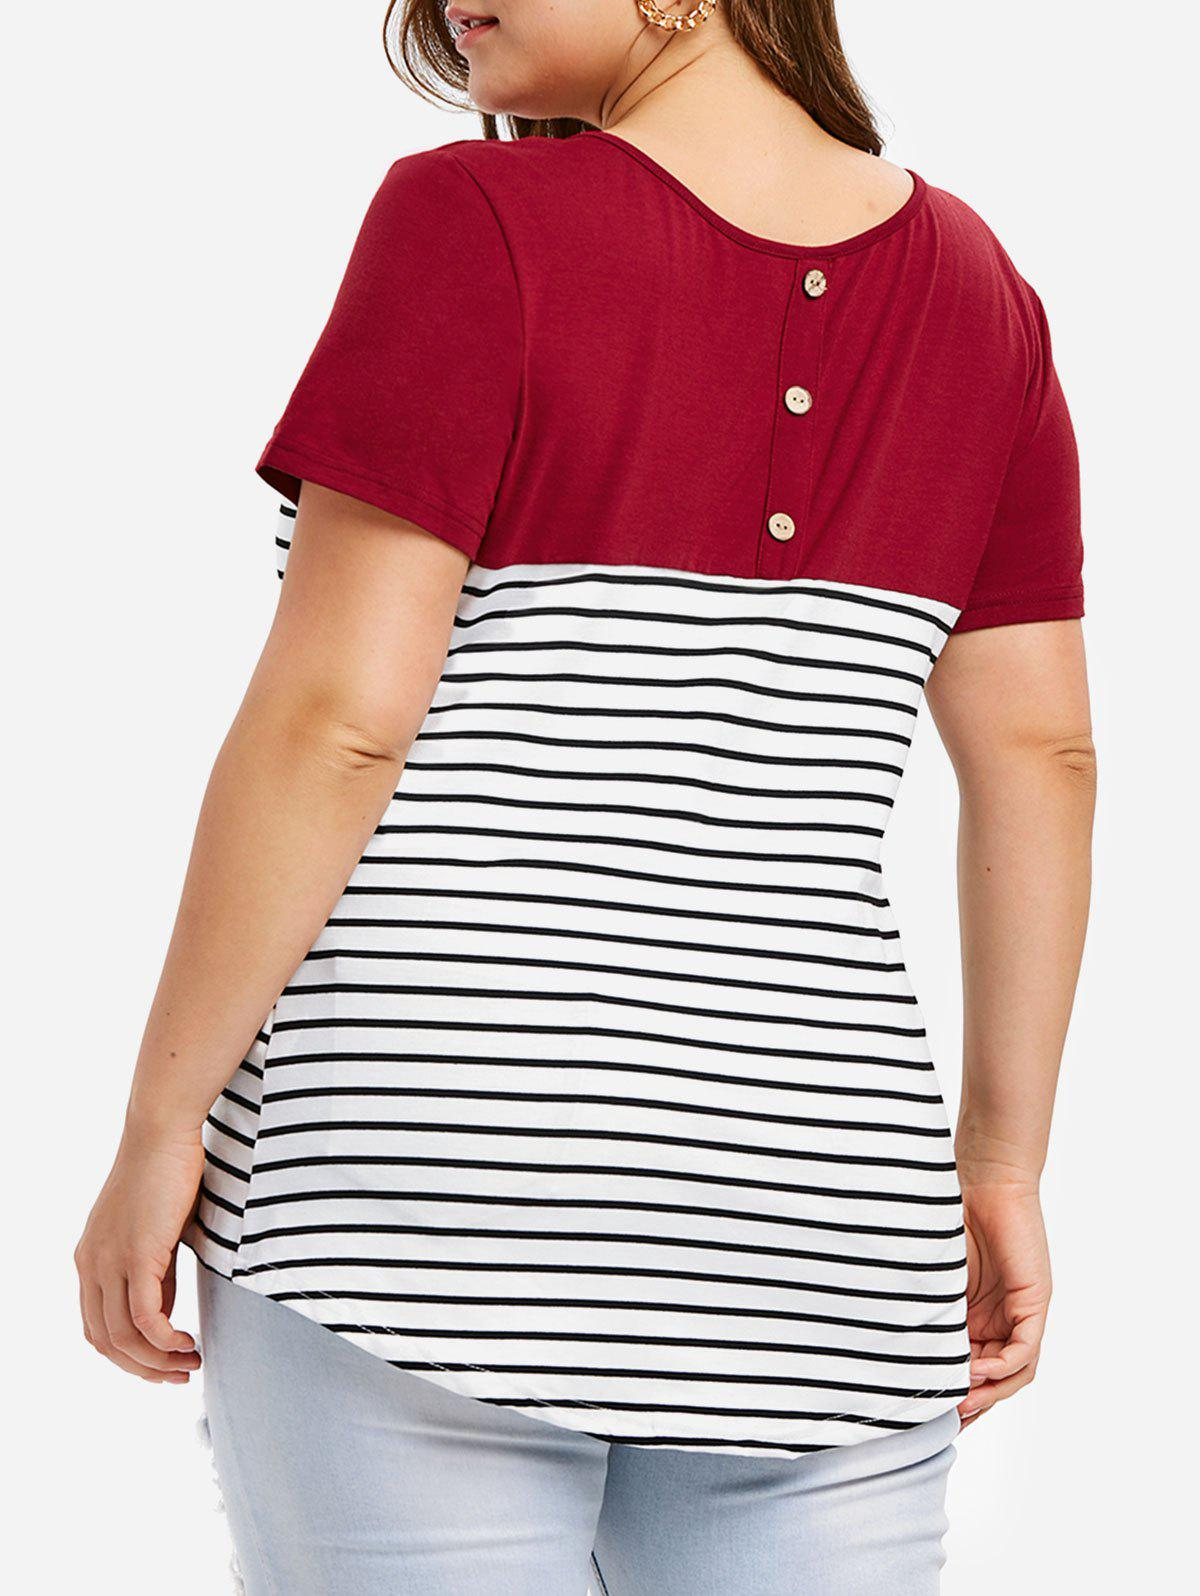 Striped Panel Button Embellished Plus Size T-shirt